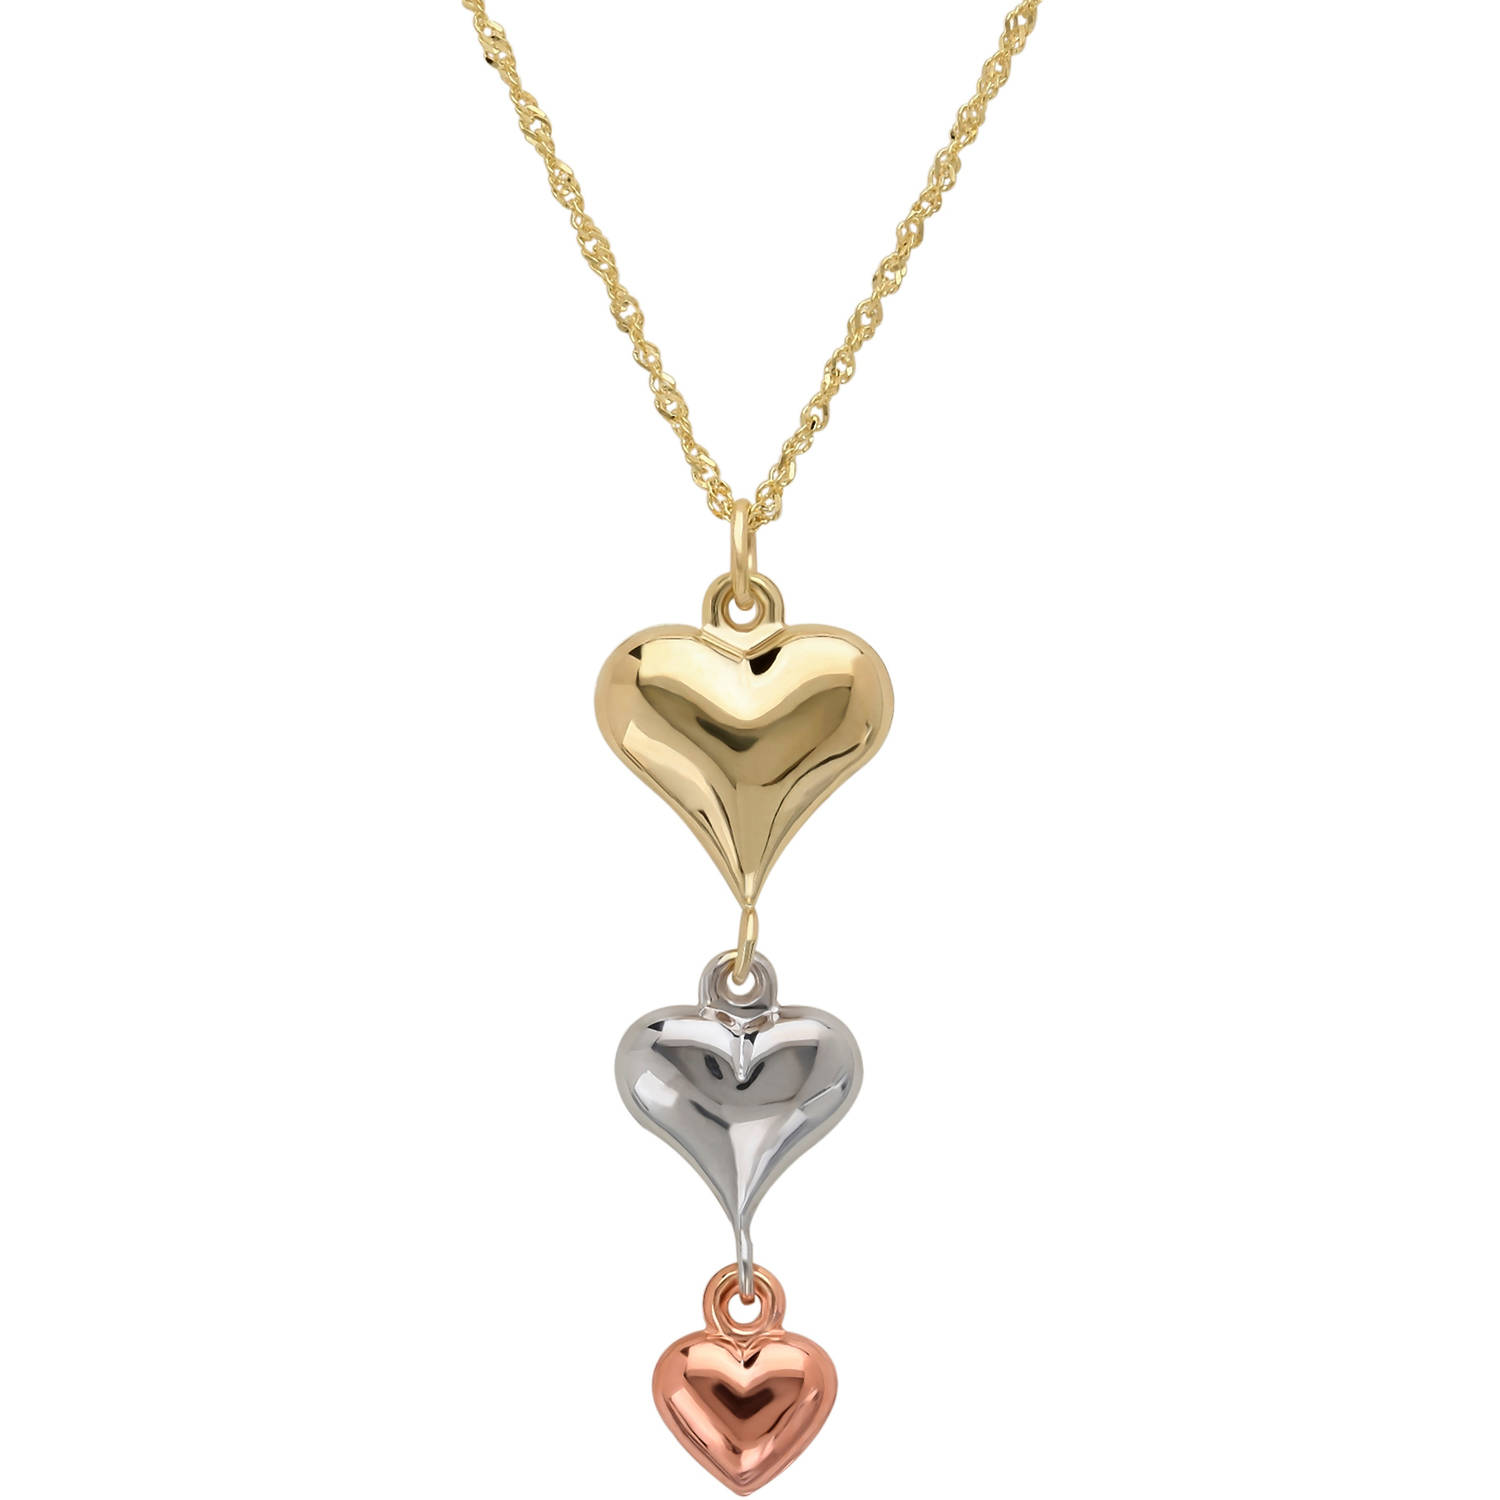 Simply Gold Puffed Heart 10kt Yellow White and Pink Gold Necklace